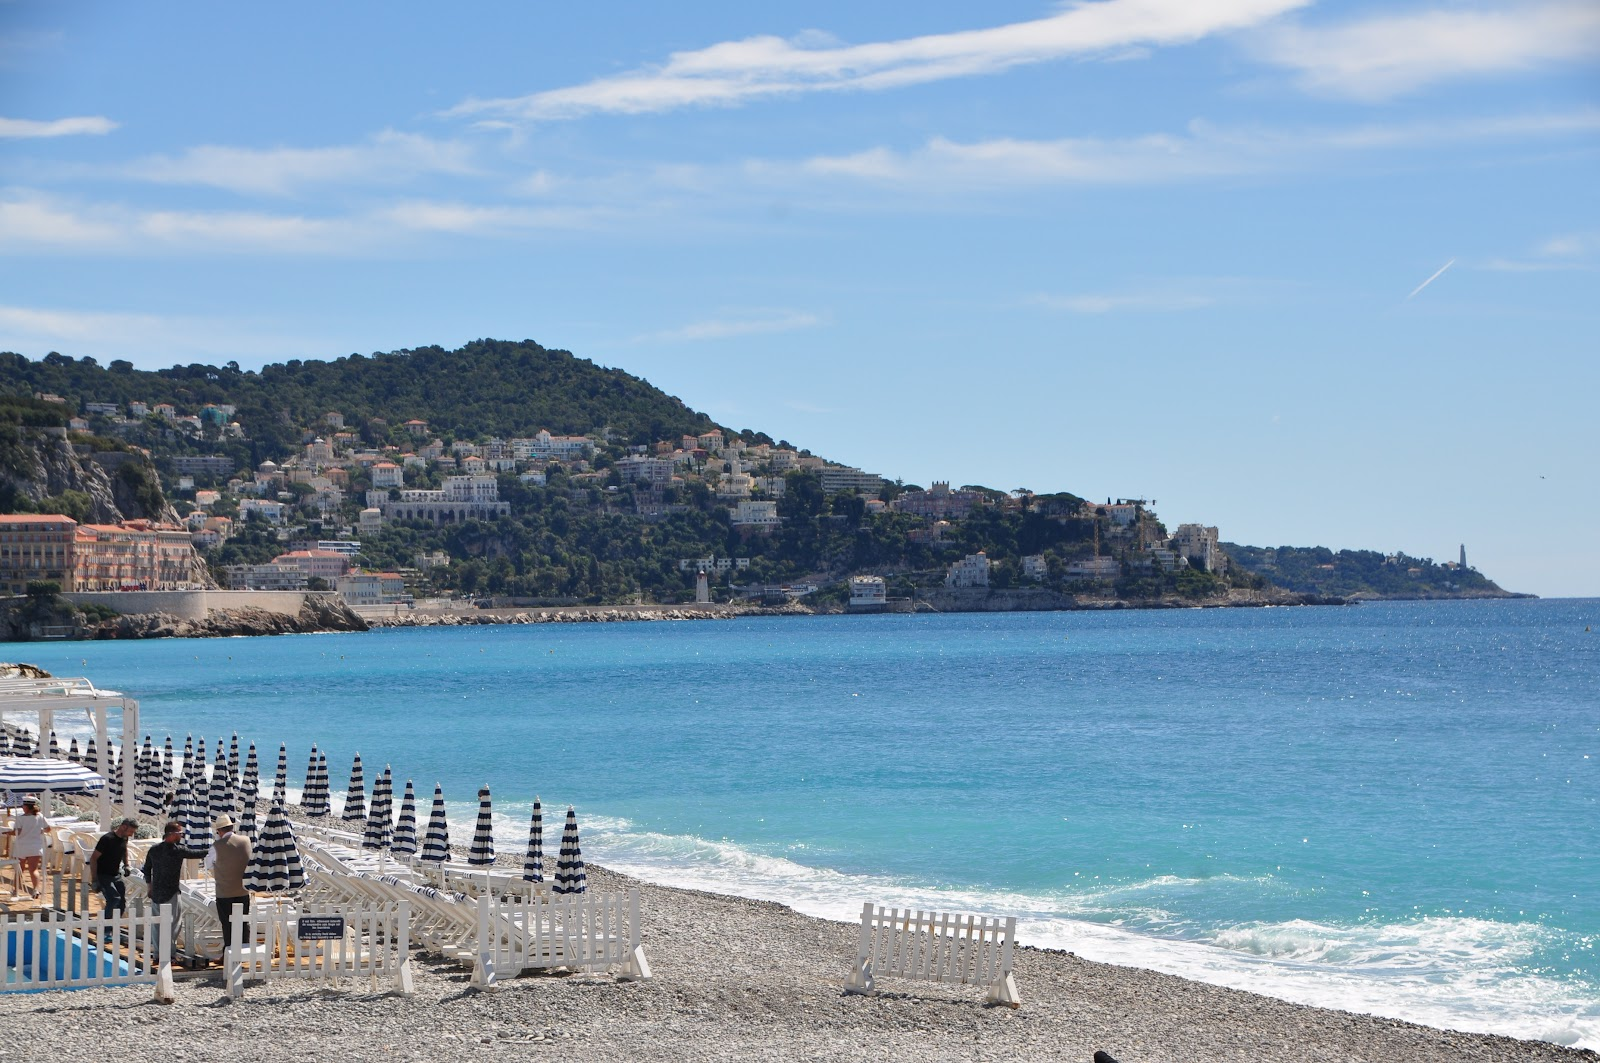 Plage Blue Beach nice france pebble beach during off-season, no tourists, pretty blue sea and calm waves, green hill and villas in the background on a sunny day in cote d'azur, french riviera.